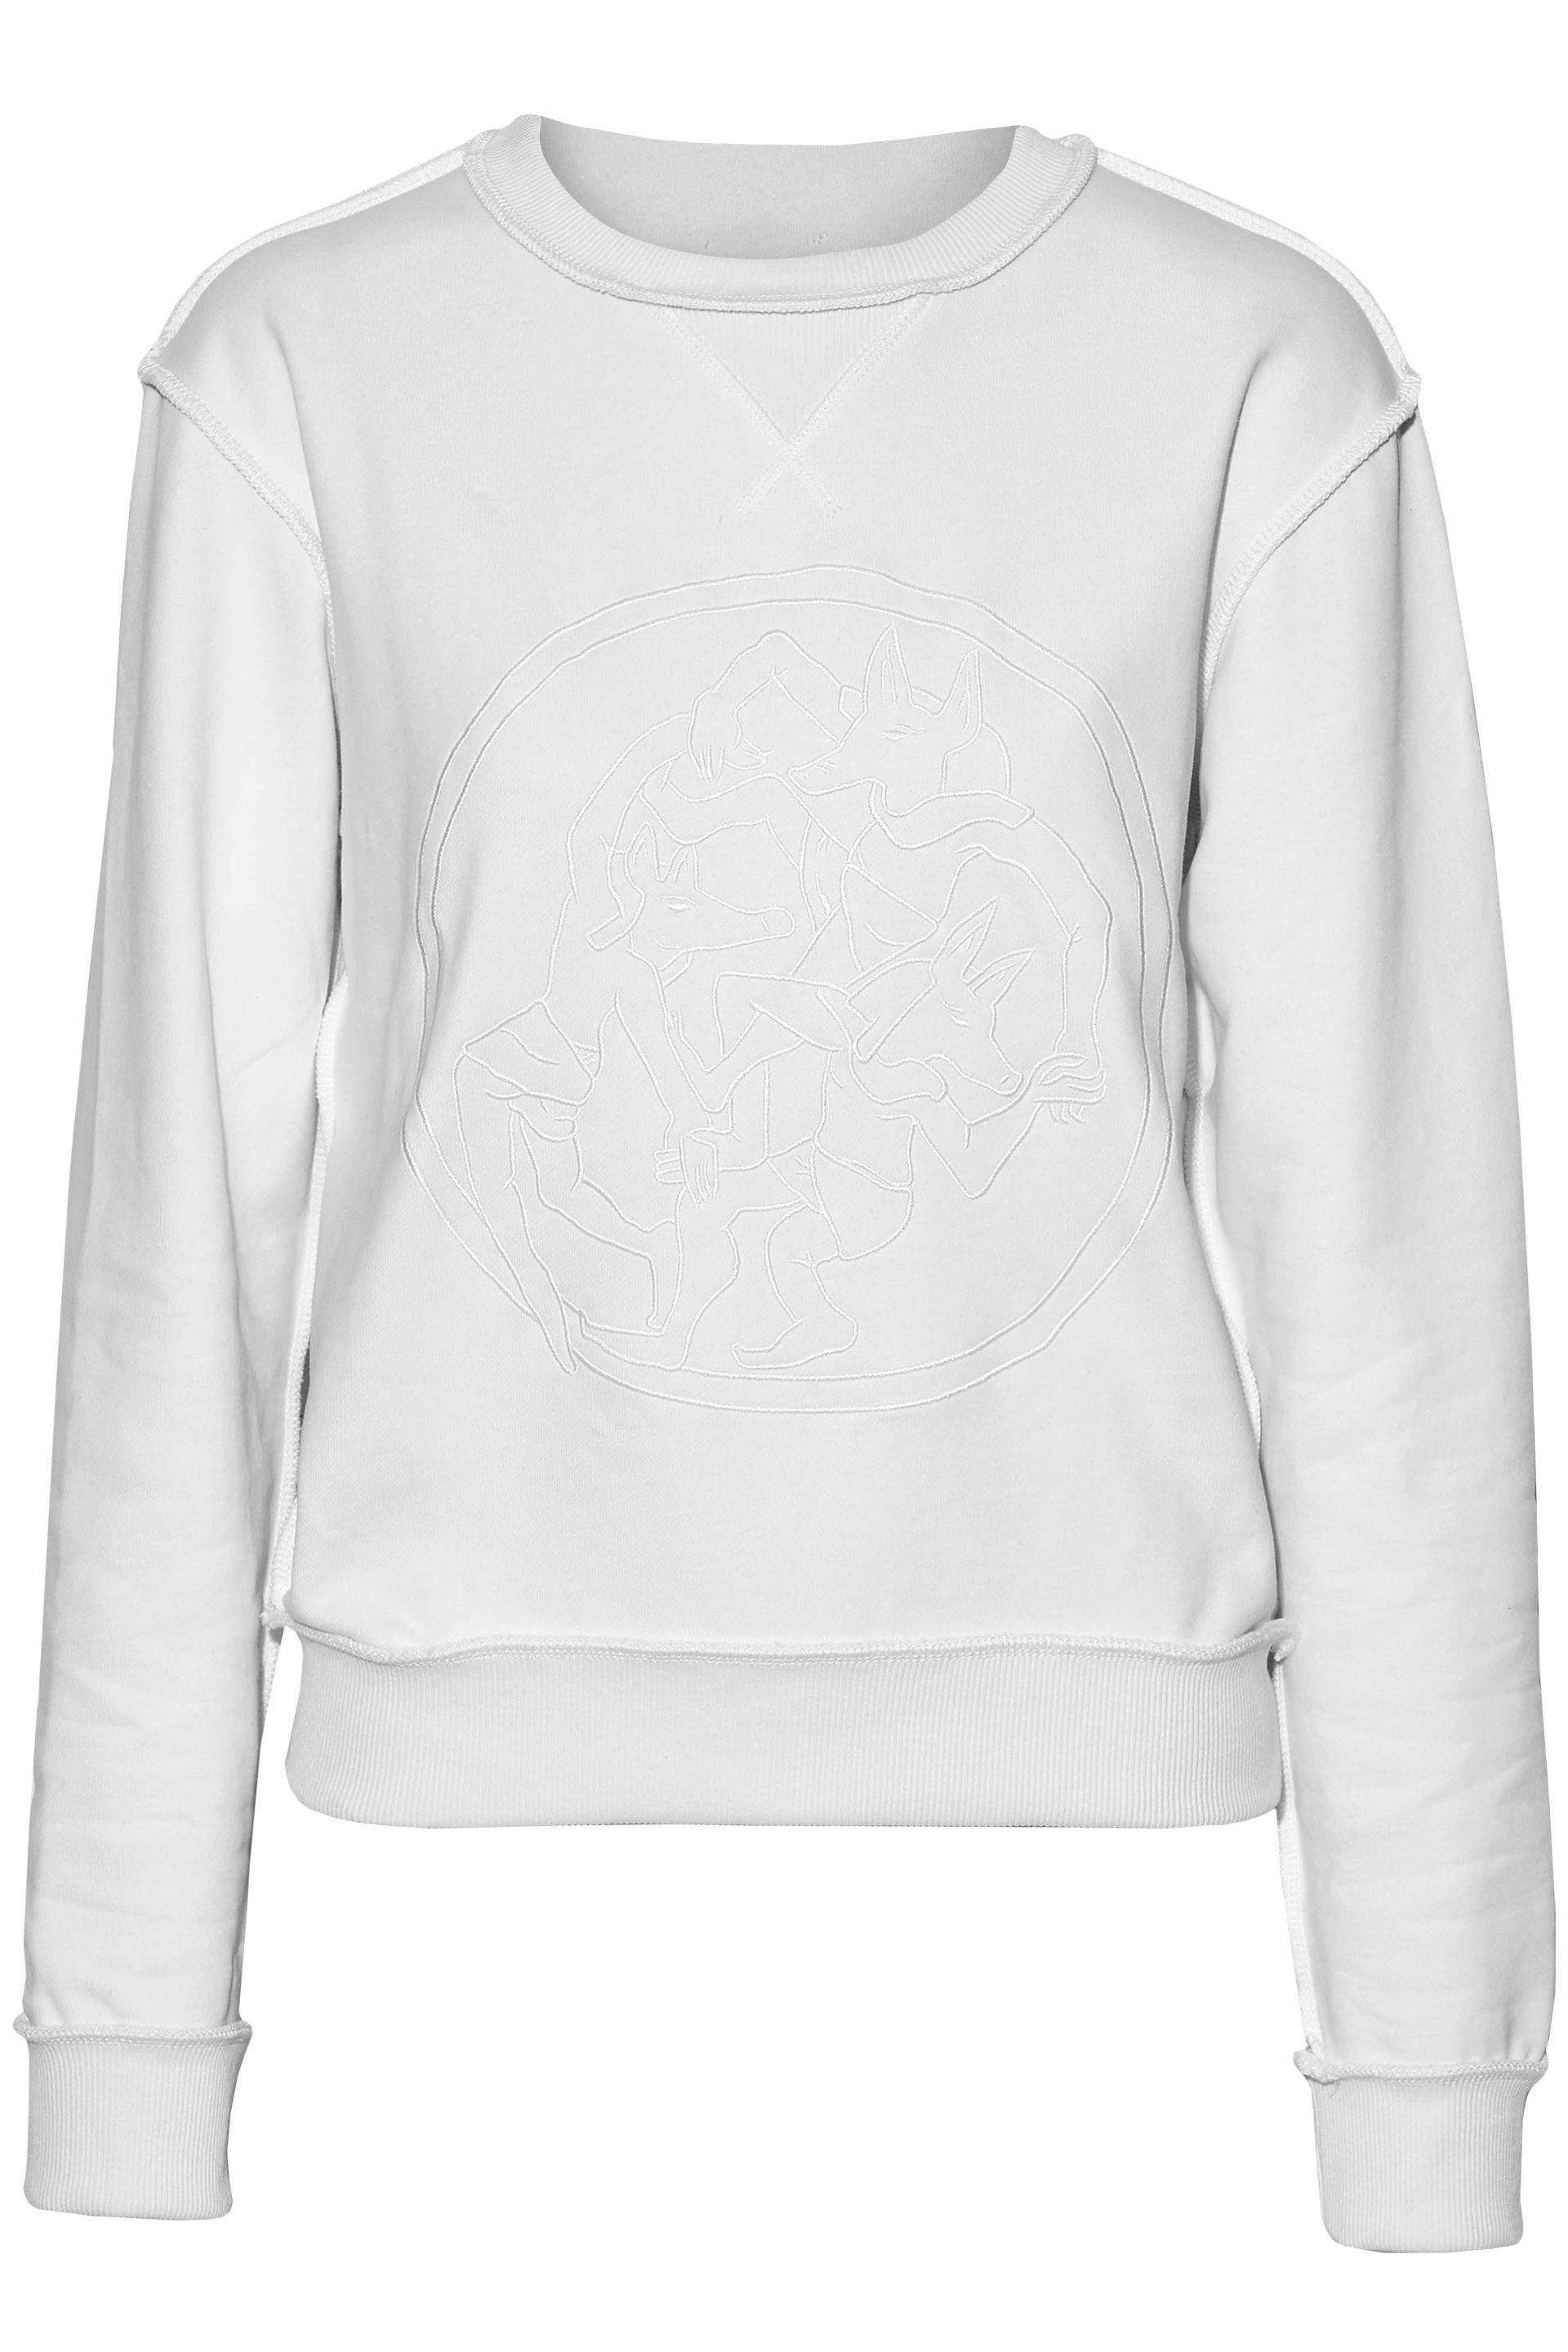 62fe55188a58c jw-anderson-White-Embroidered-Cotton-terry-Sweatshirt.jpeg